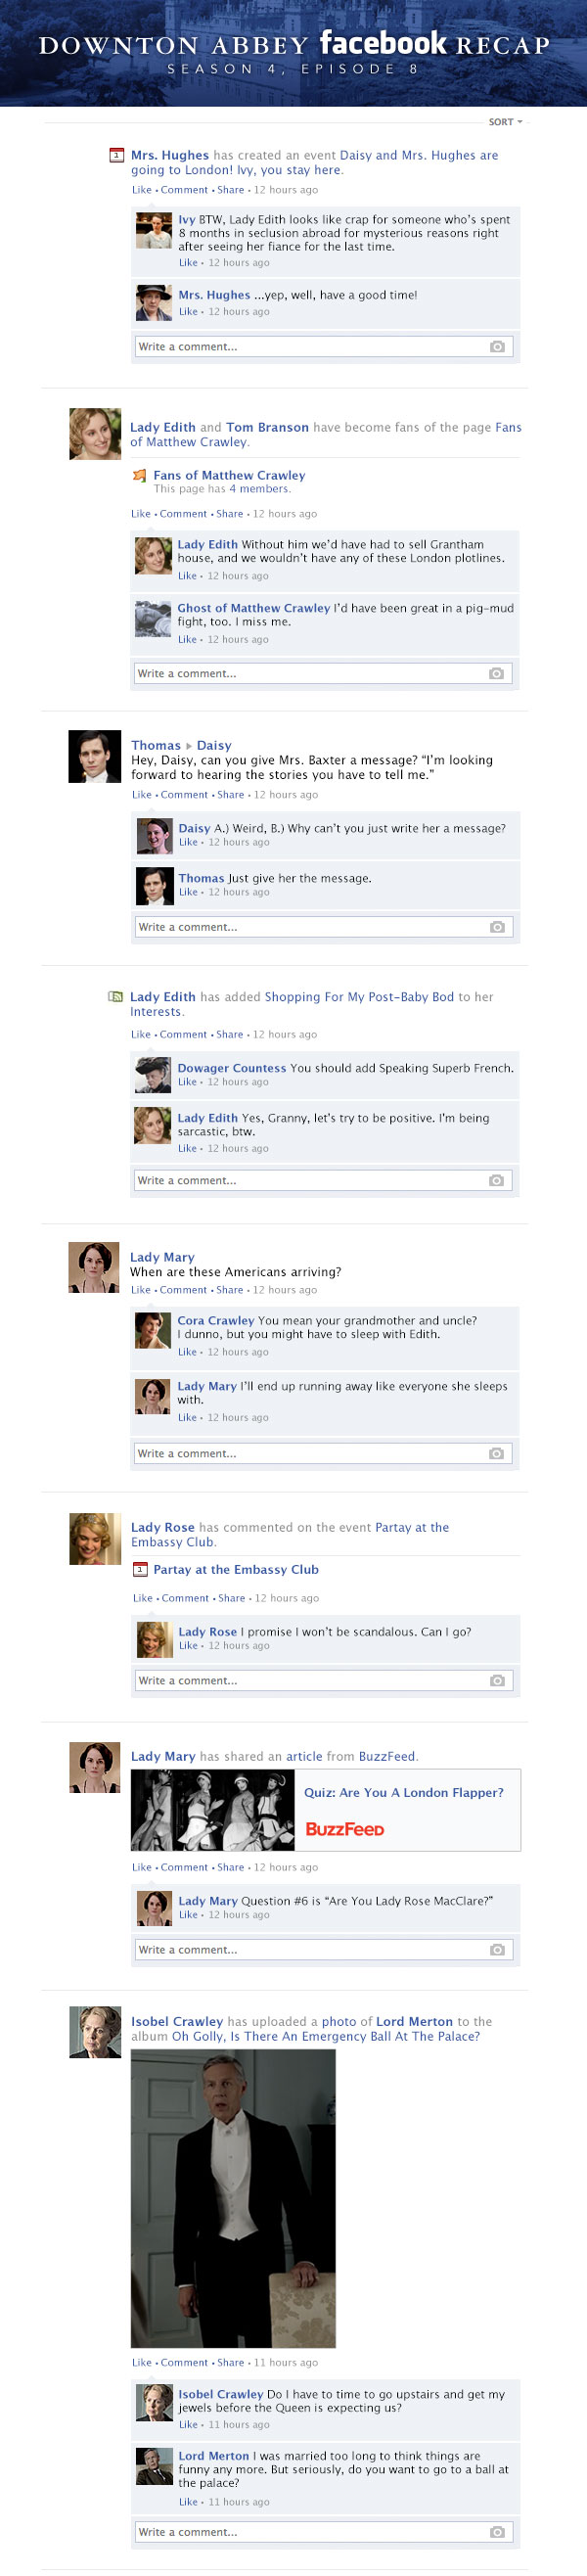 If 'Downton Abbey' took place entirely on Facebook - Season 4 Finale, 'The London Season' Recap.